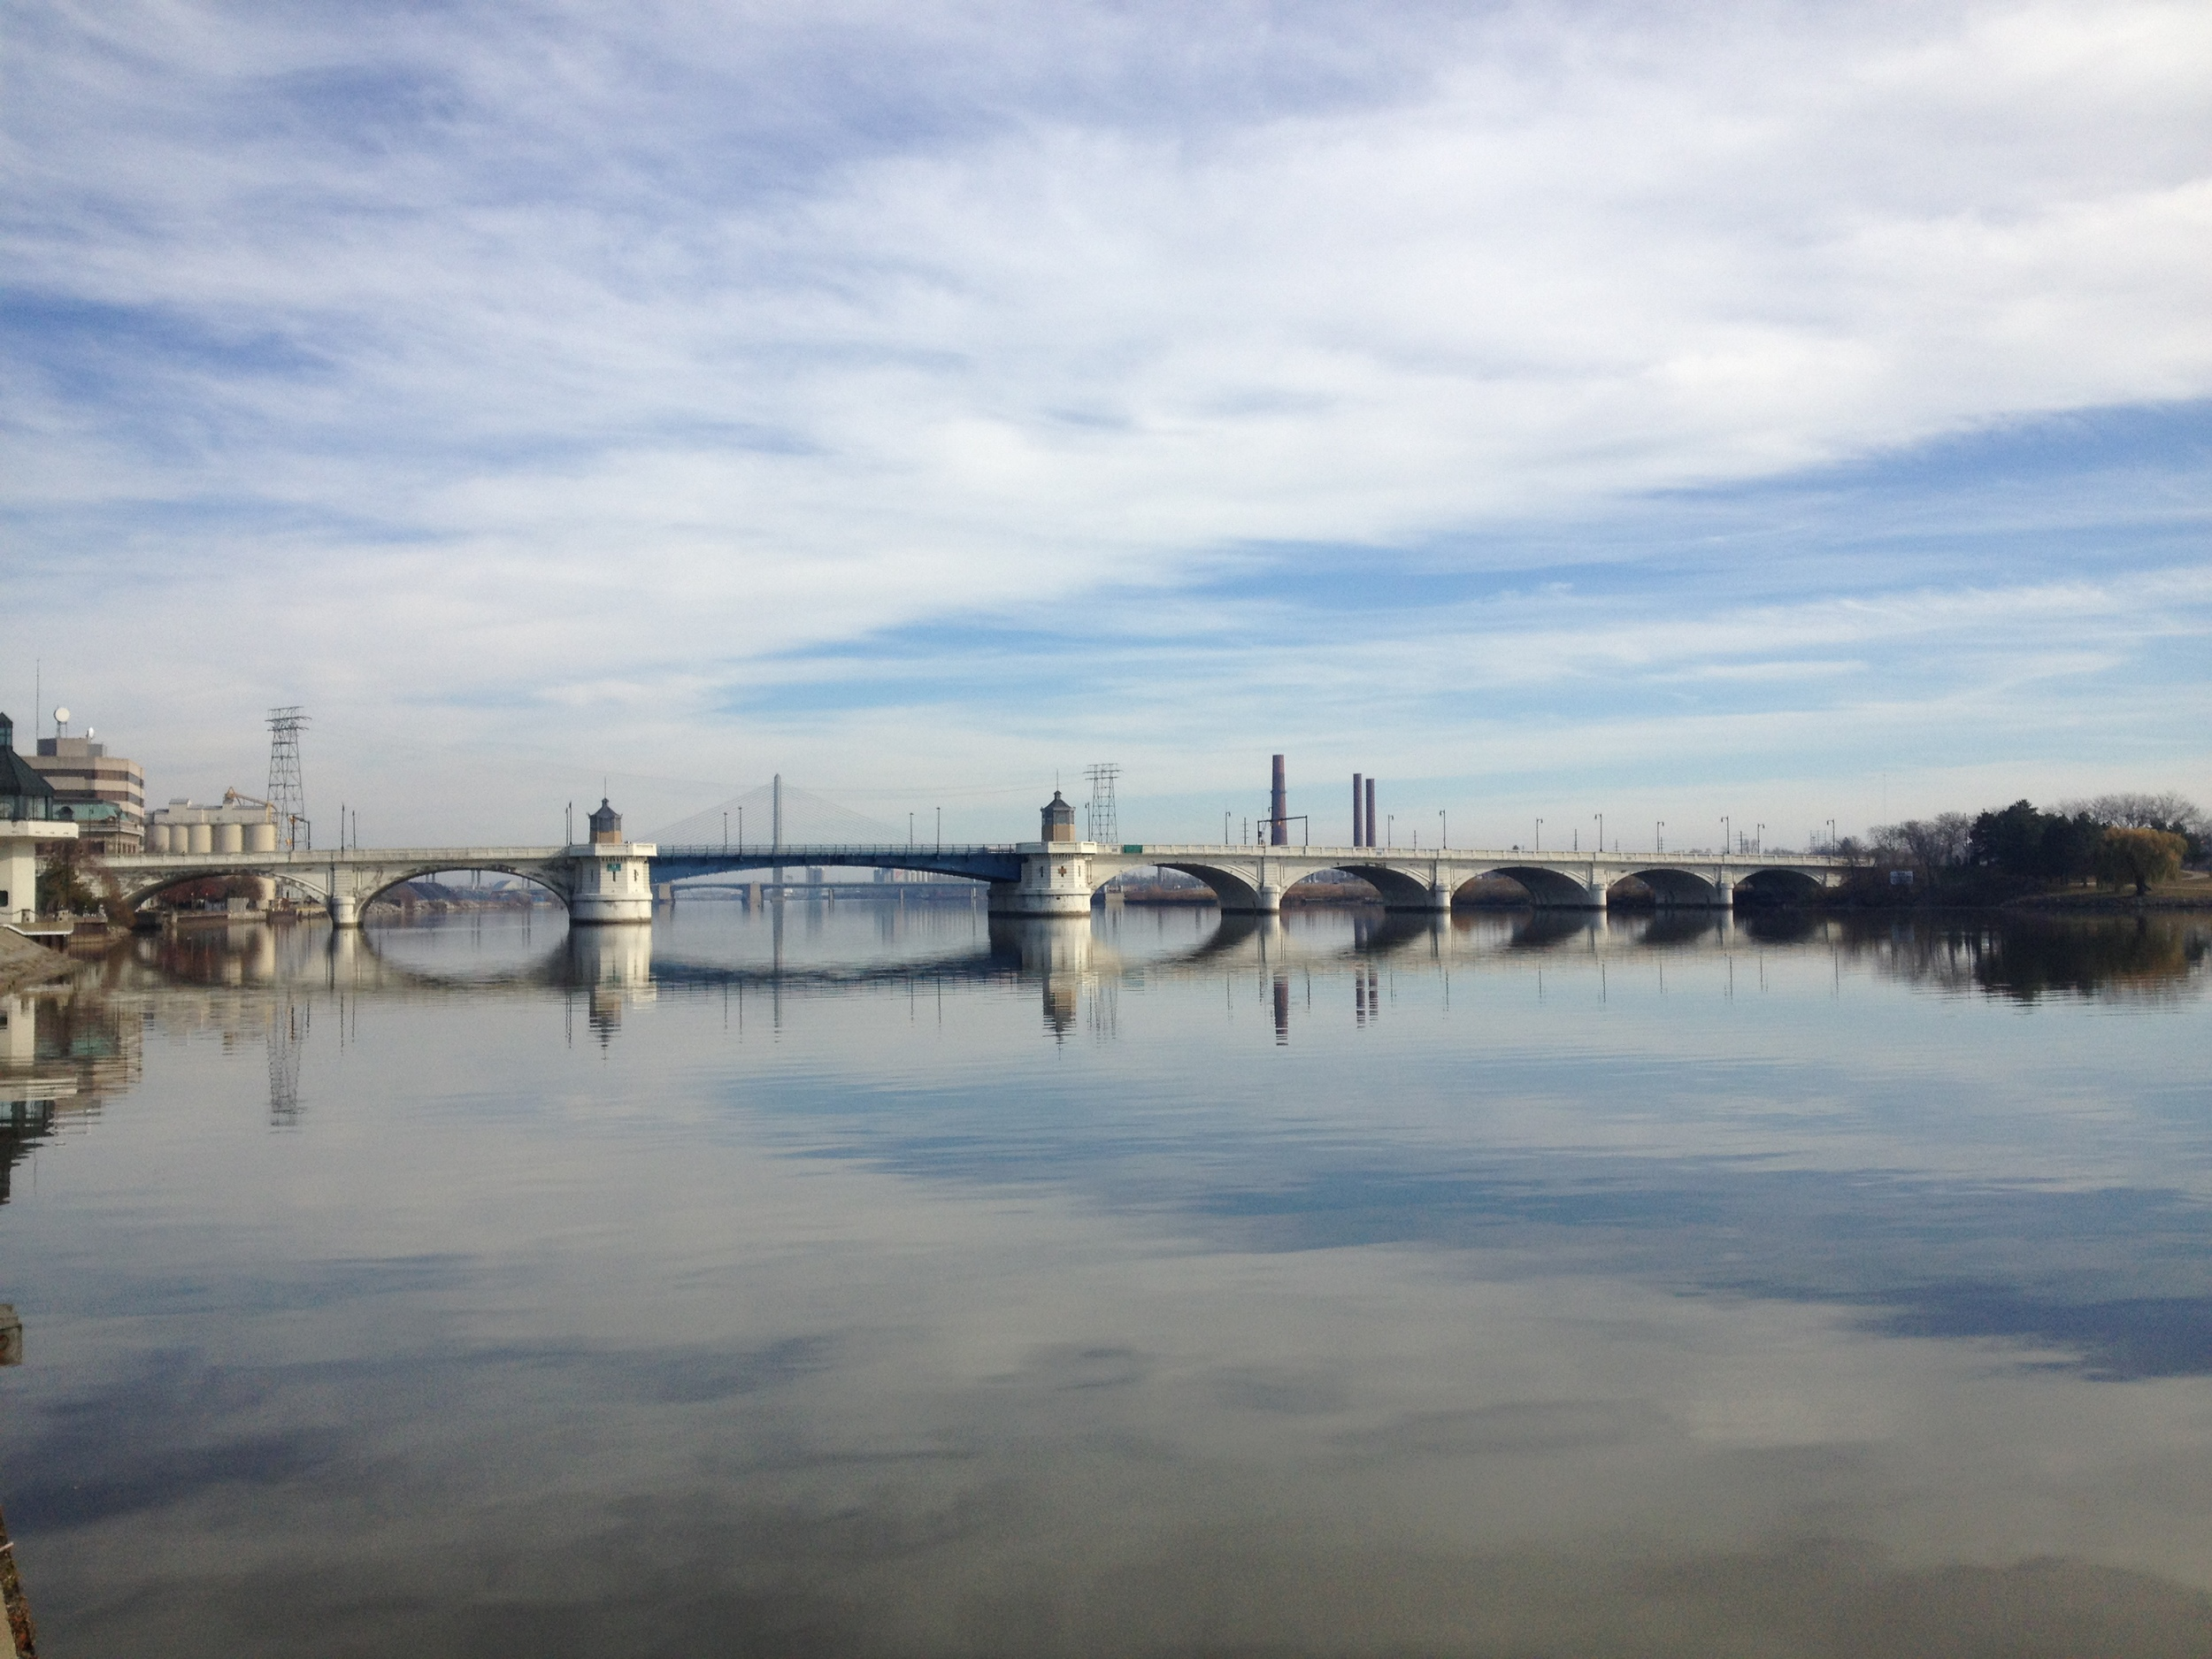 Maumee River, Toledo, OH 11-18-12